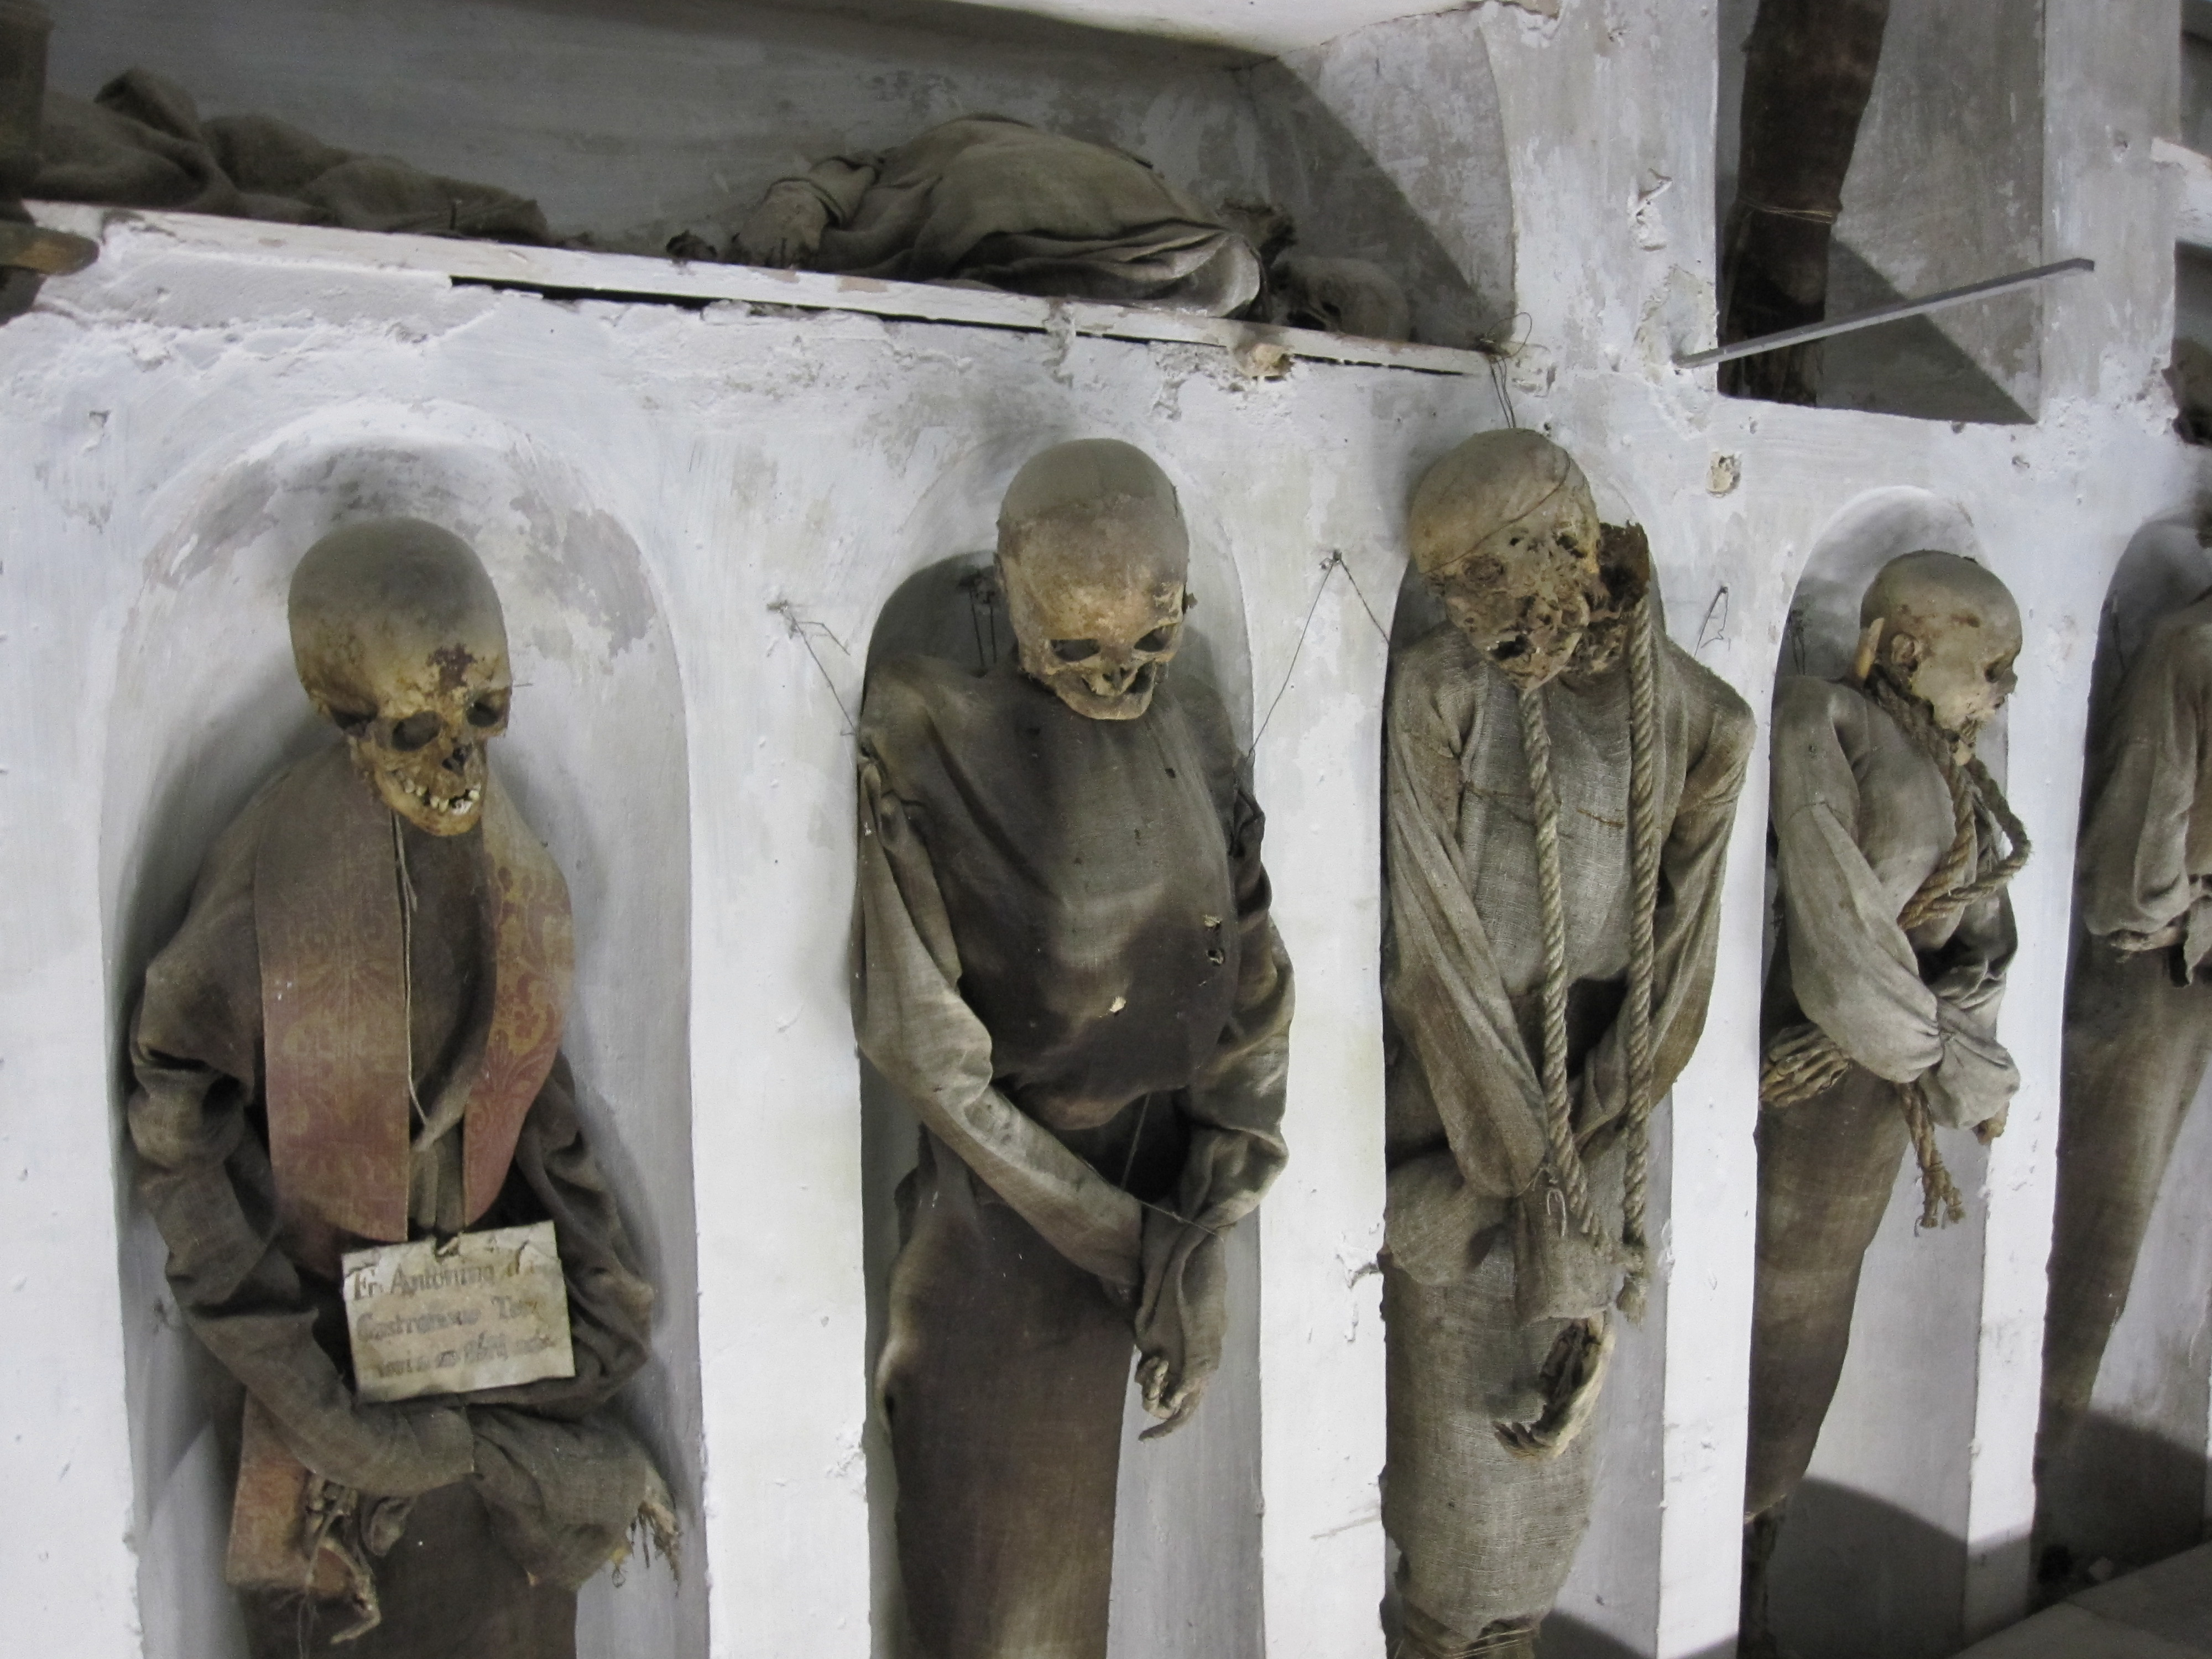 the capuchin catacombs of palermo The capuchin crypt is a small space comprising several tiny chapels located beneath the church of santa maria della concezione dei cappuccini on the via veneto near piazza barberini in rome, italy it contains the skeletal remains of 3,700 bodies believed to be capuchin friars buried by their order .